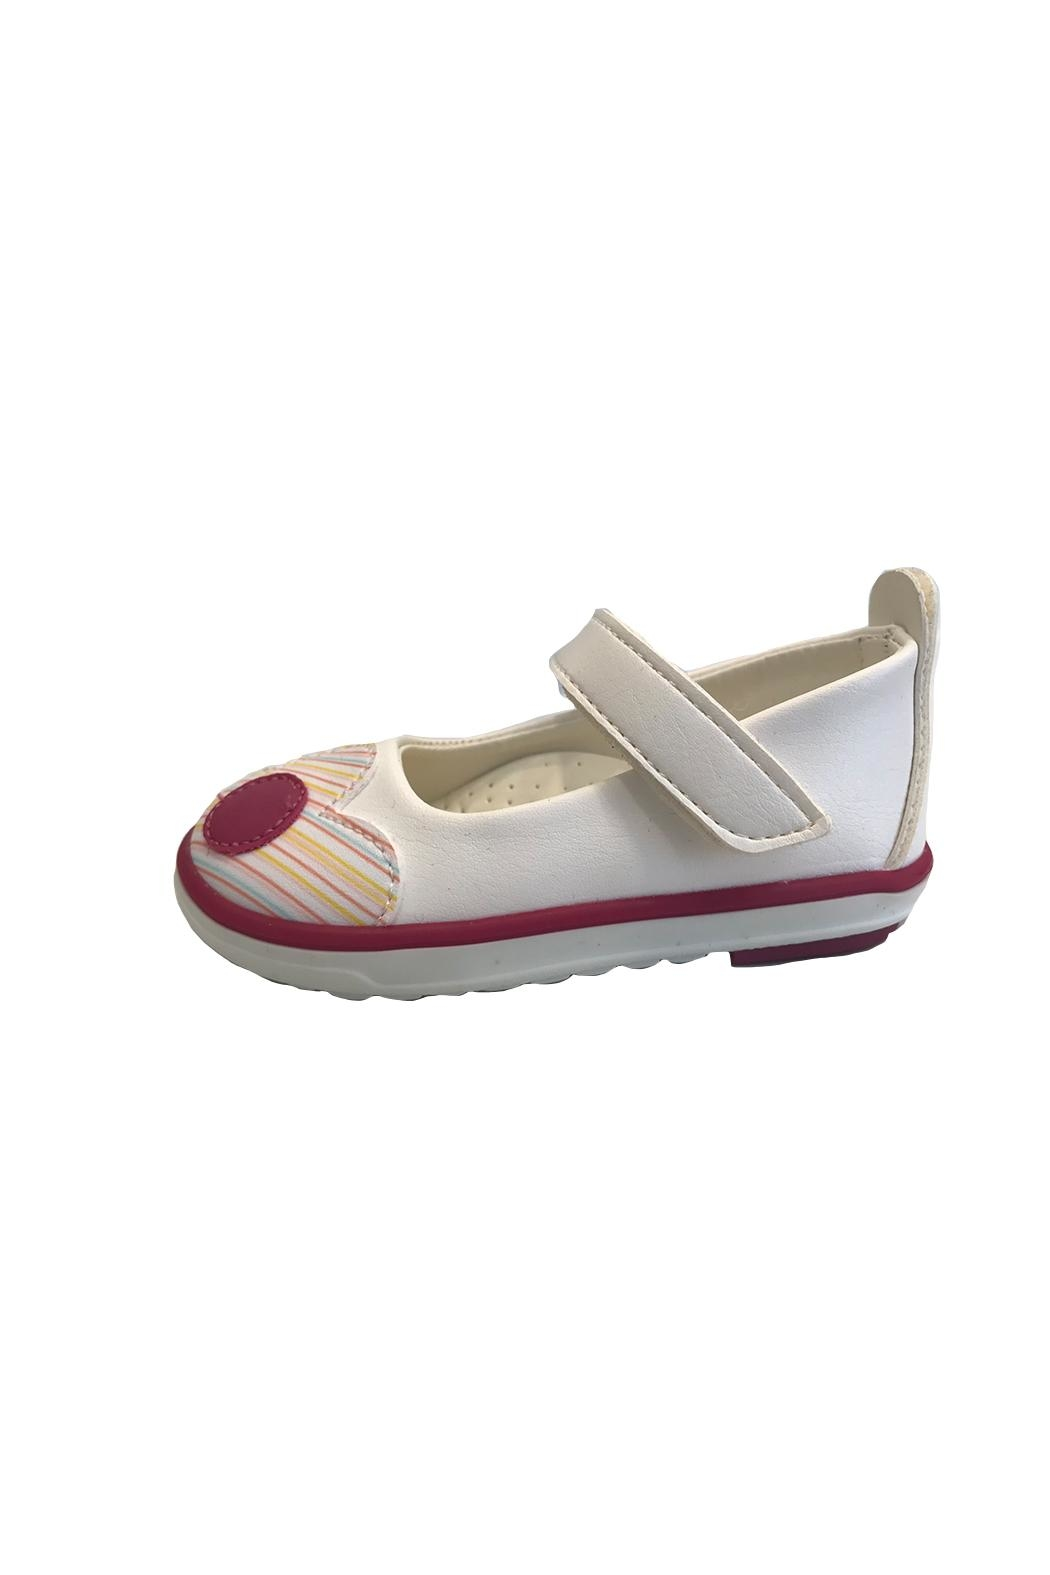 Unbranded Girl Shoes - Main Image